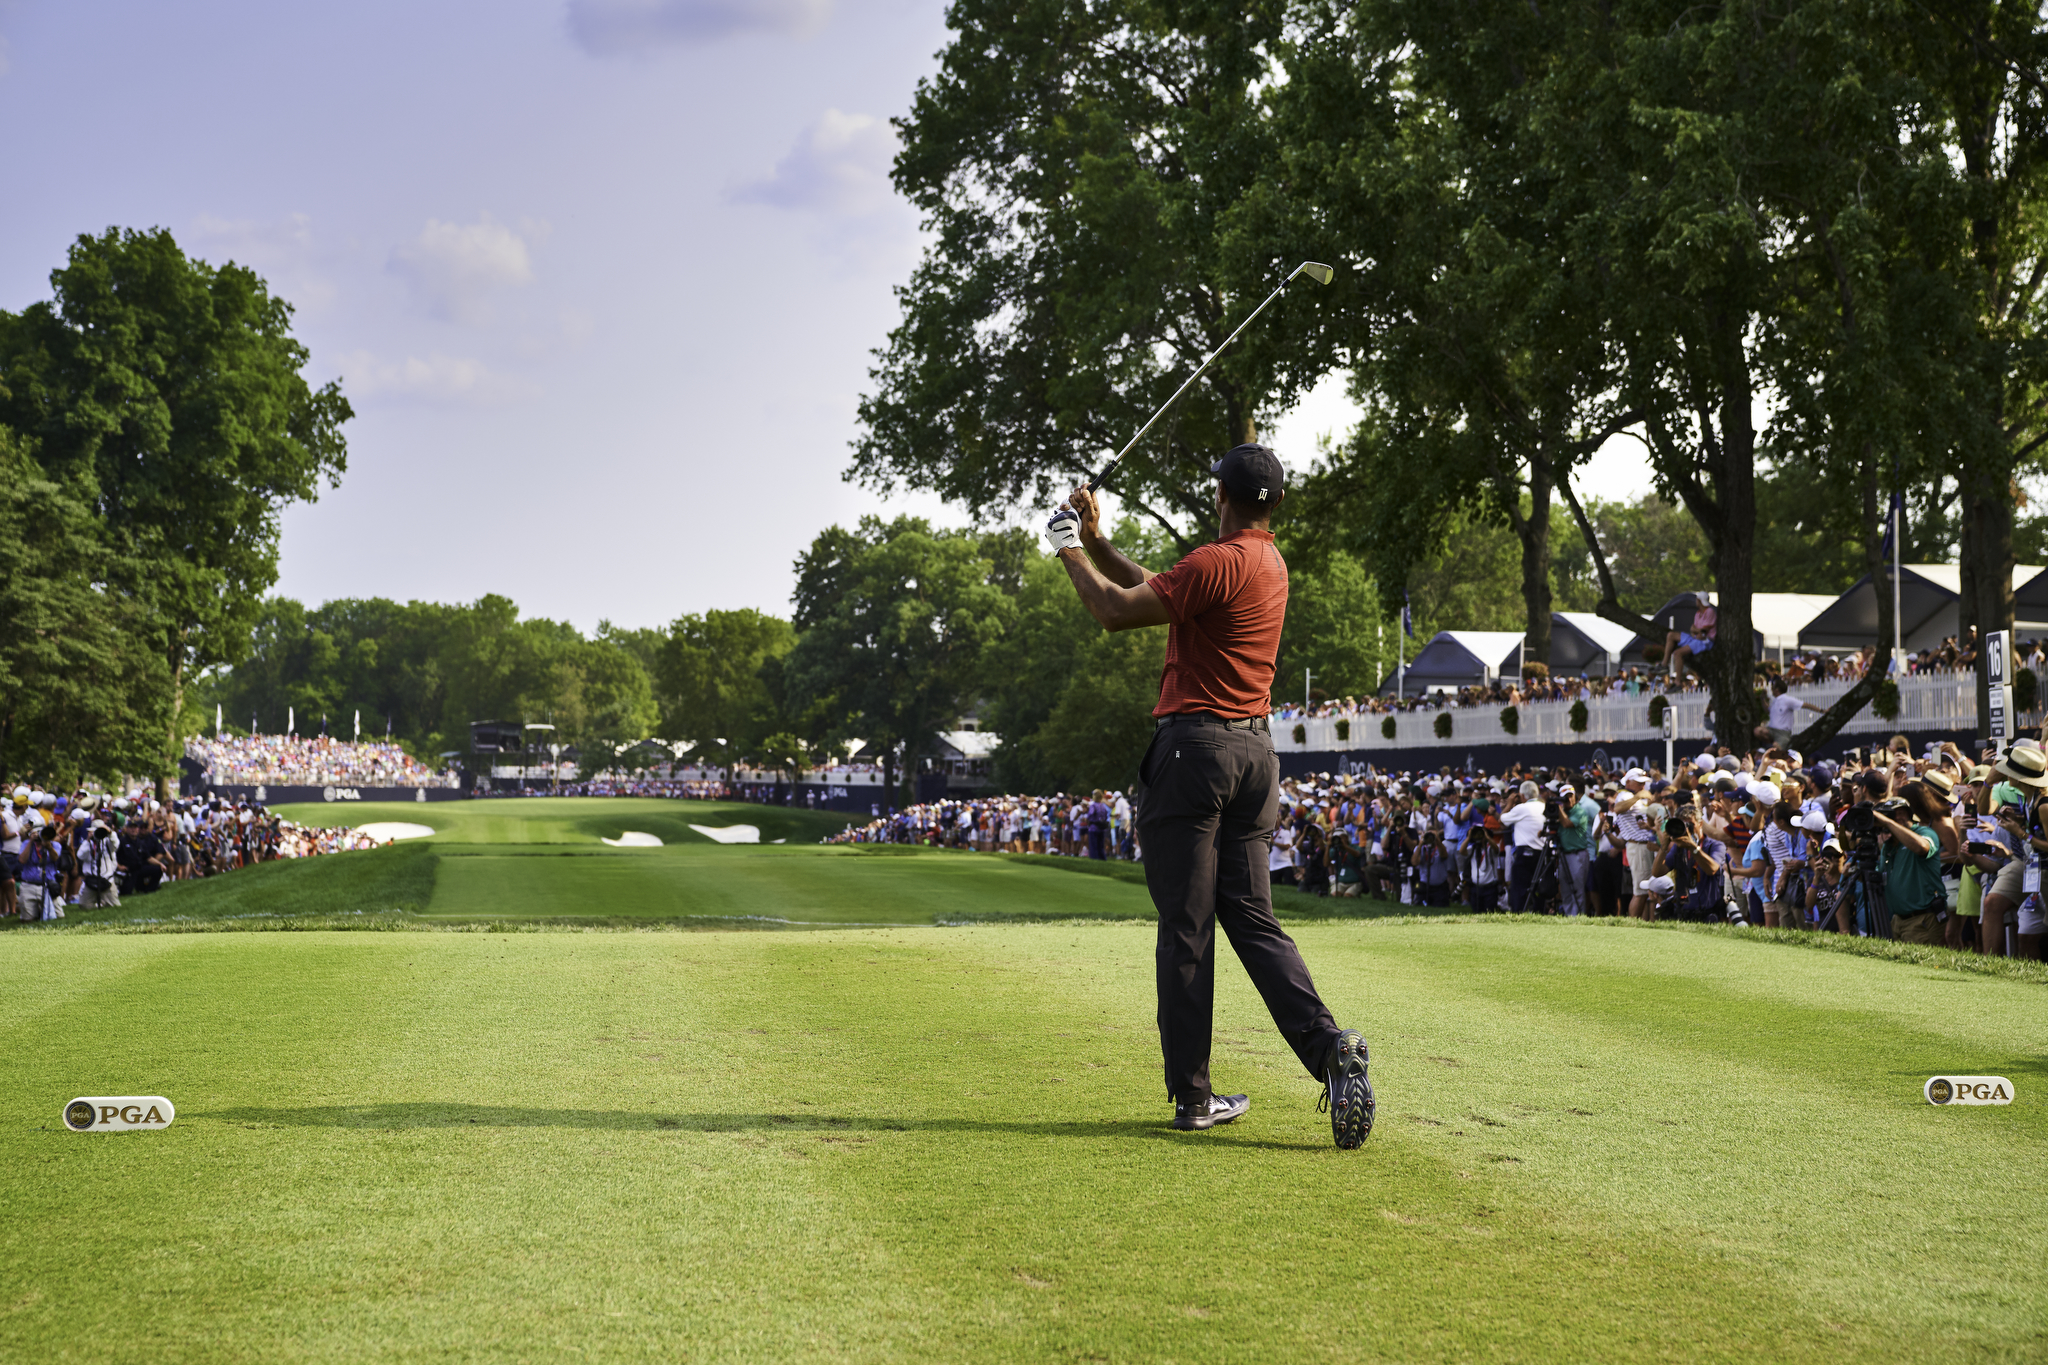 Tiger Woods, 2018 PGA Championship.  Sony A7rIII, Sony 24-70mm f2.8 GM.